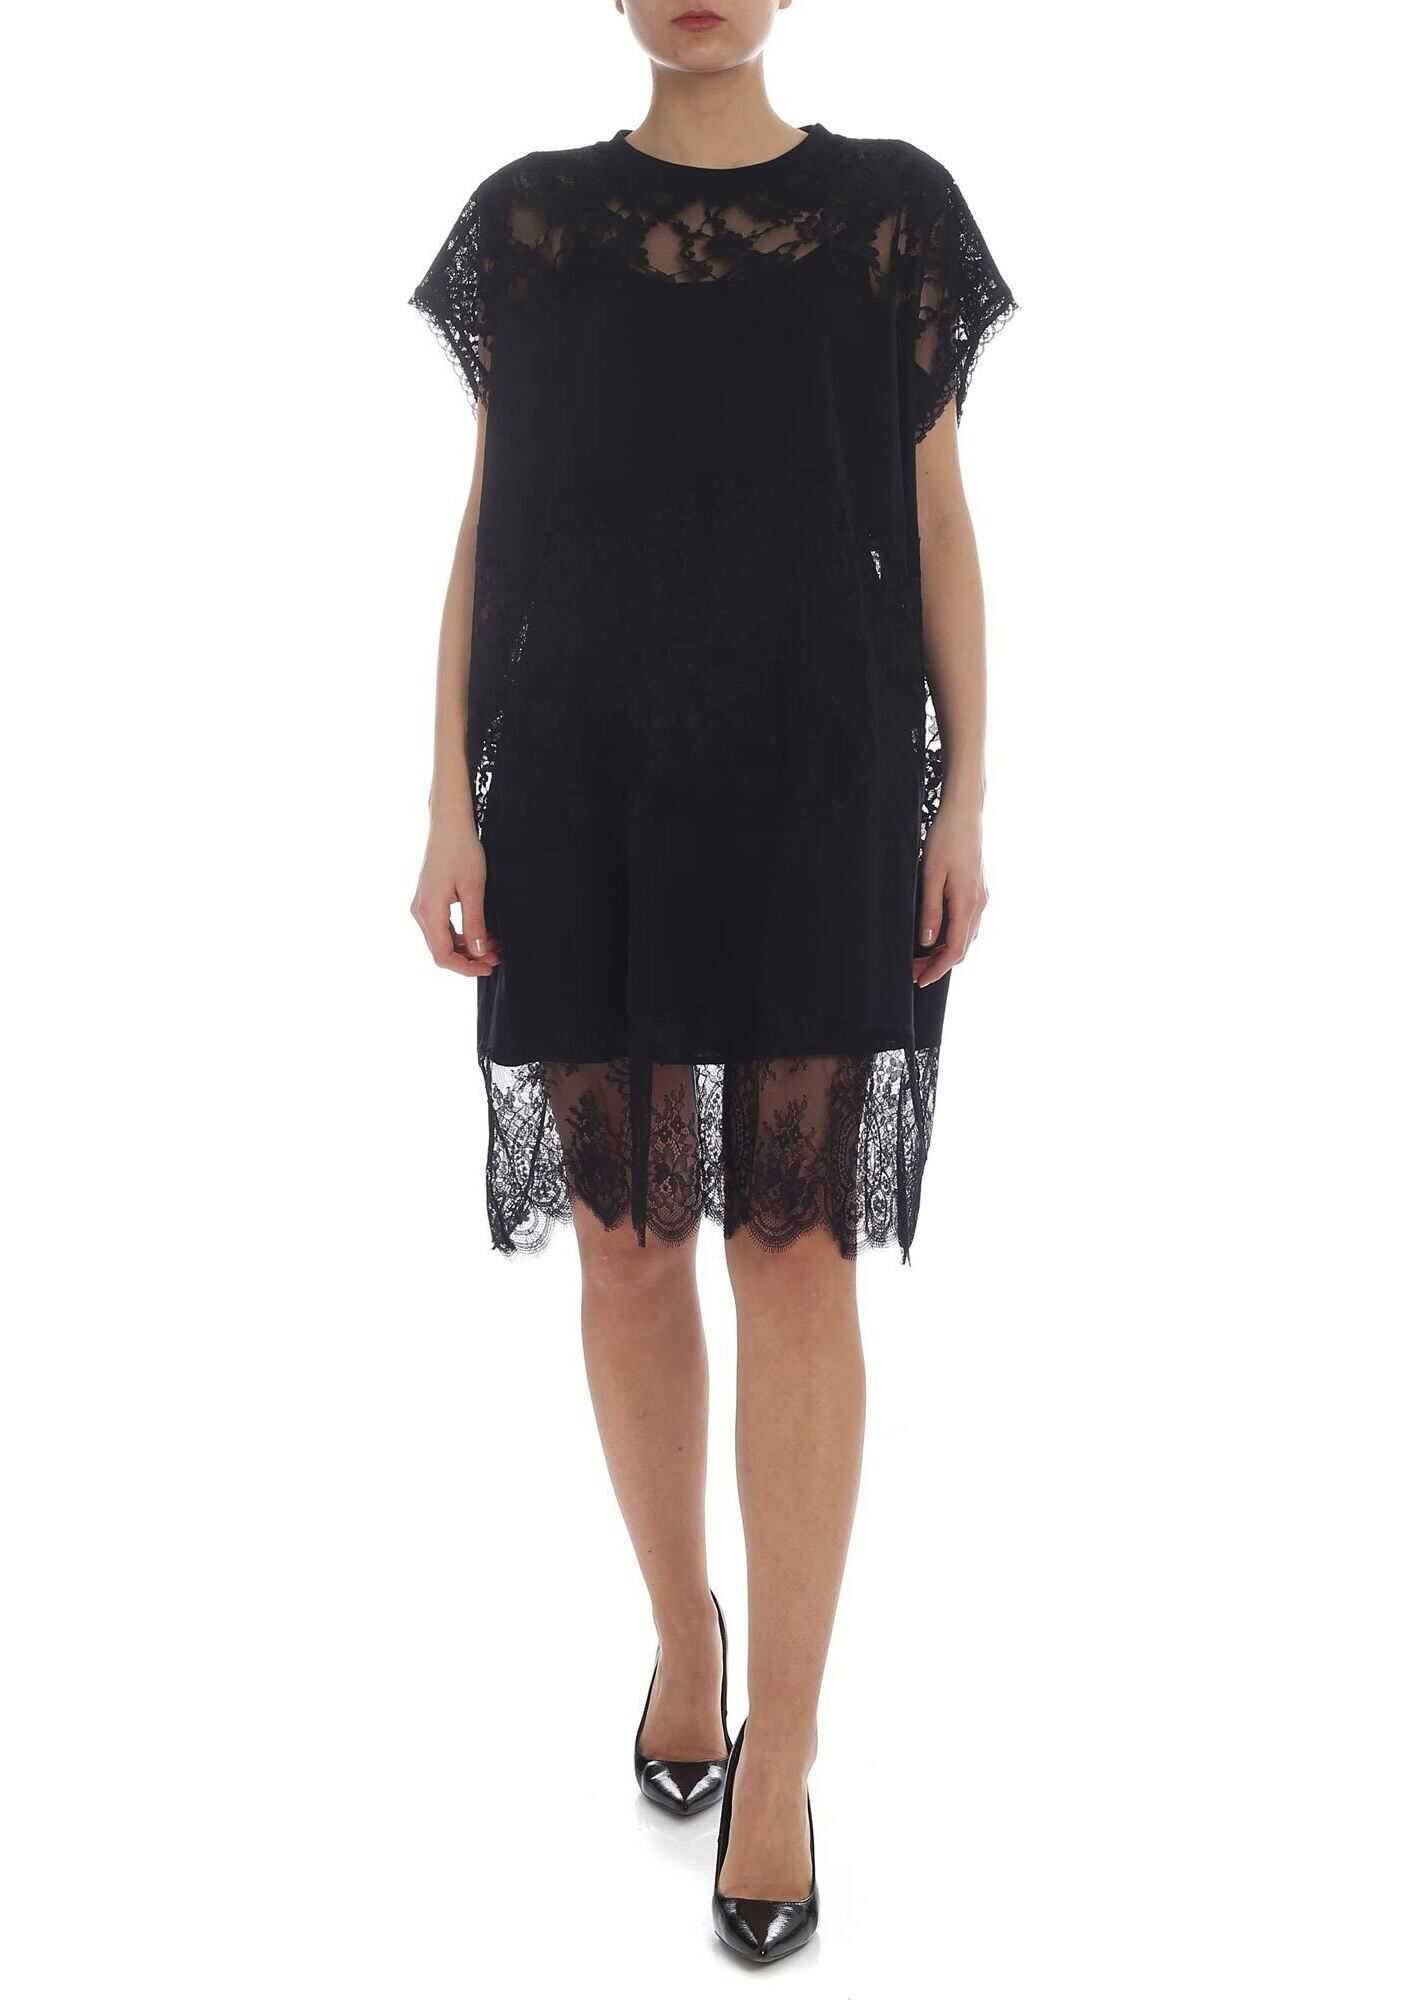 MCQ Alexander McQueen Mcq Dress In Black With Lace Inserts Black